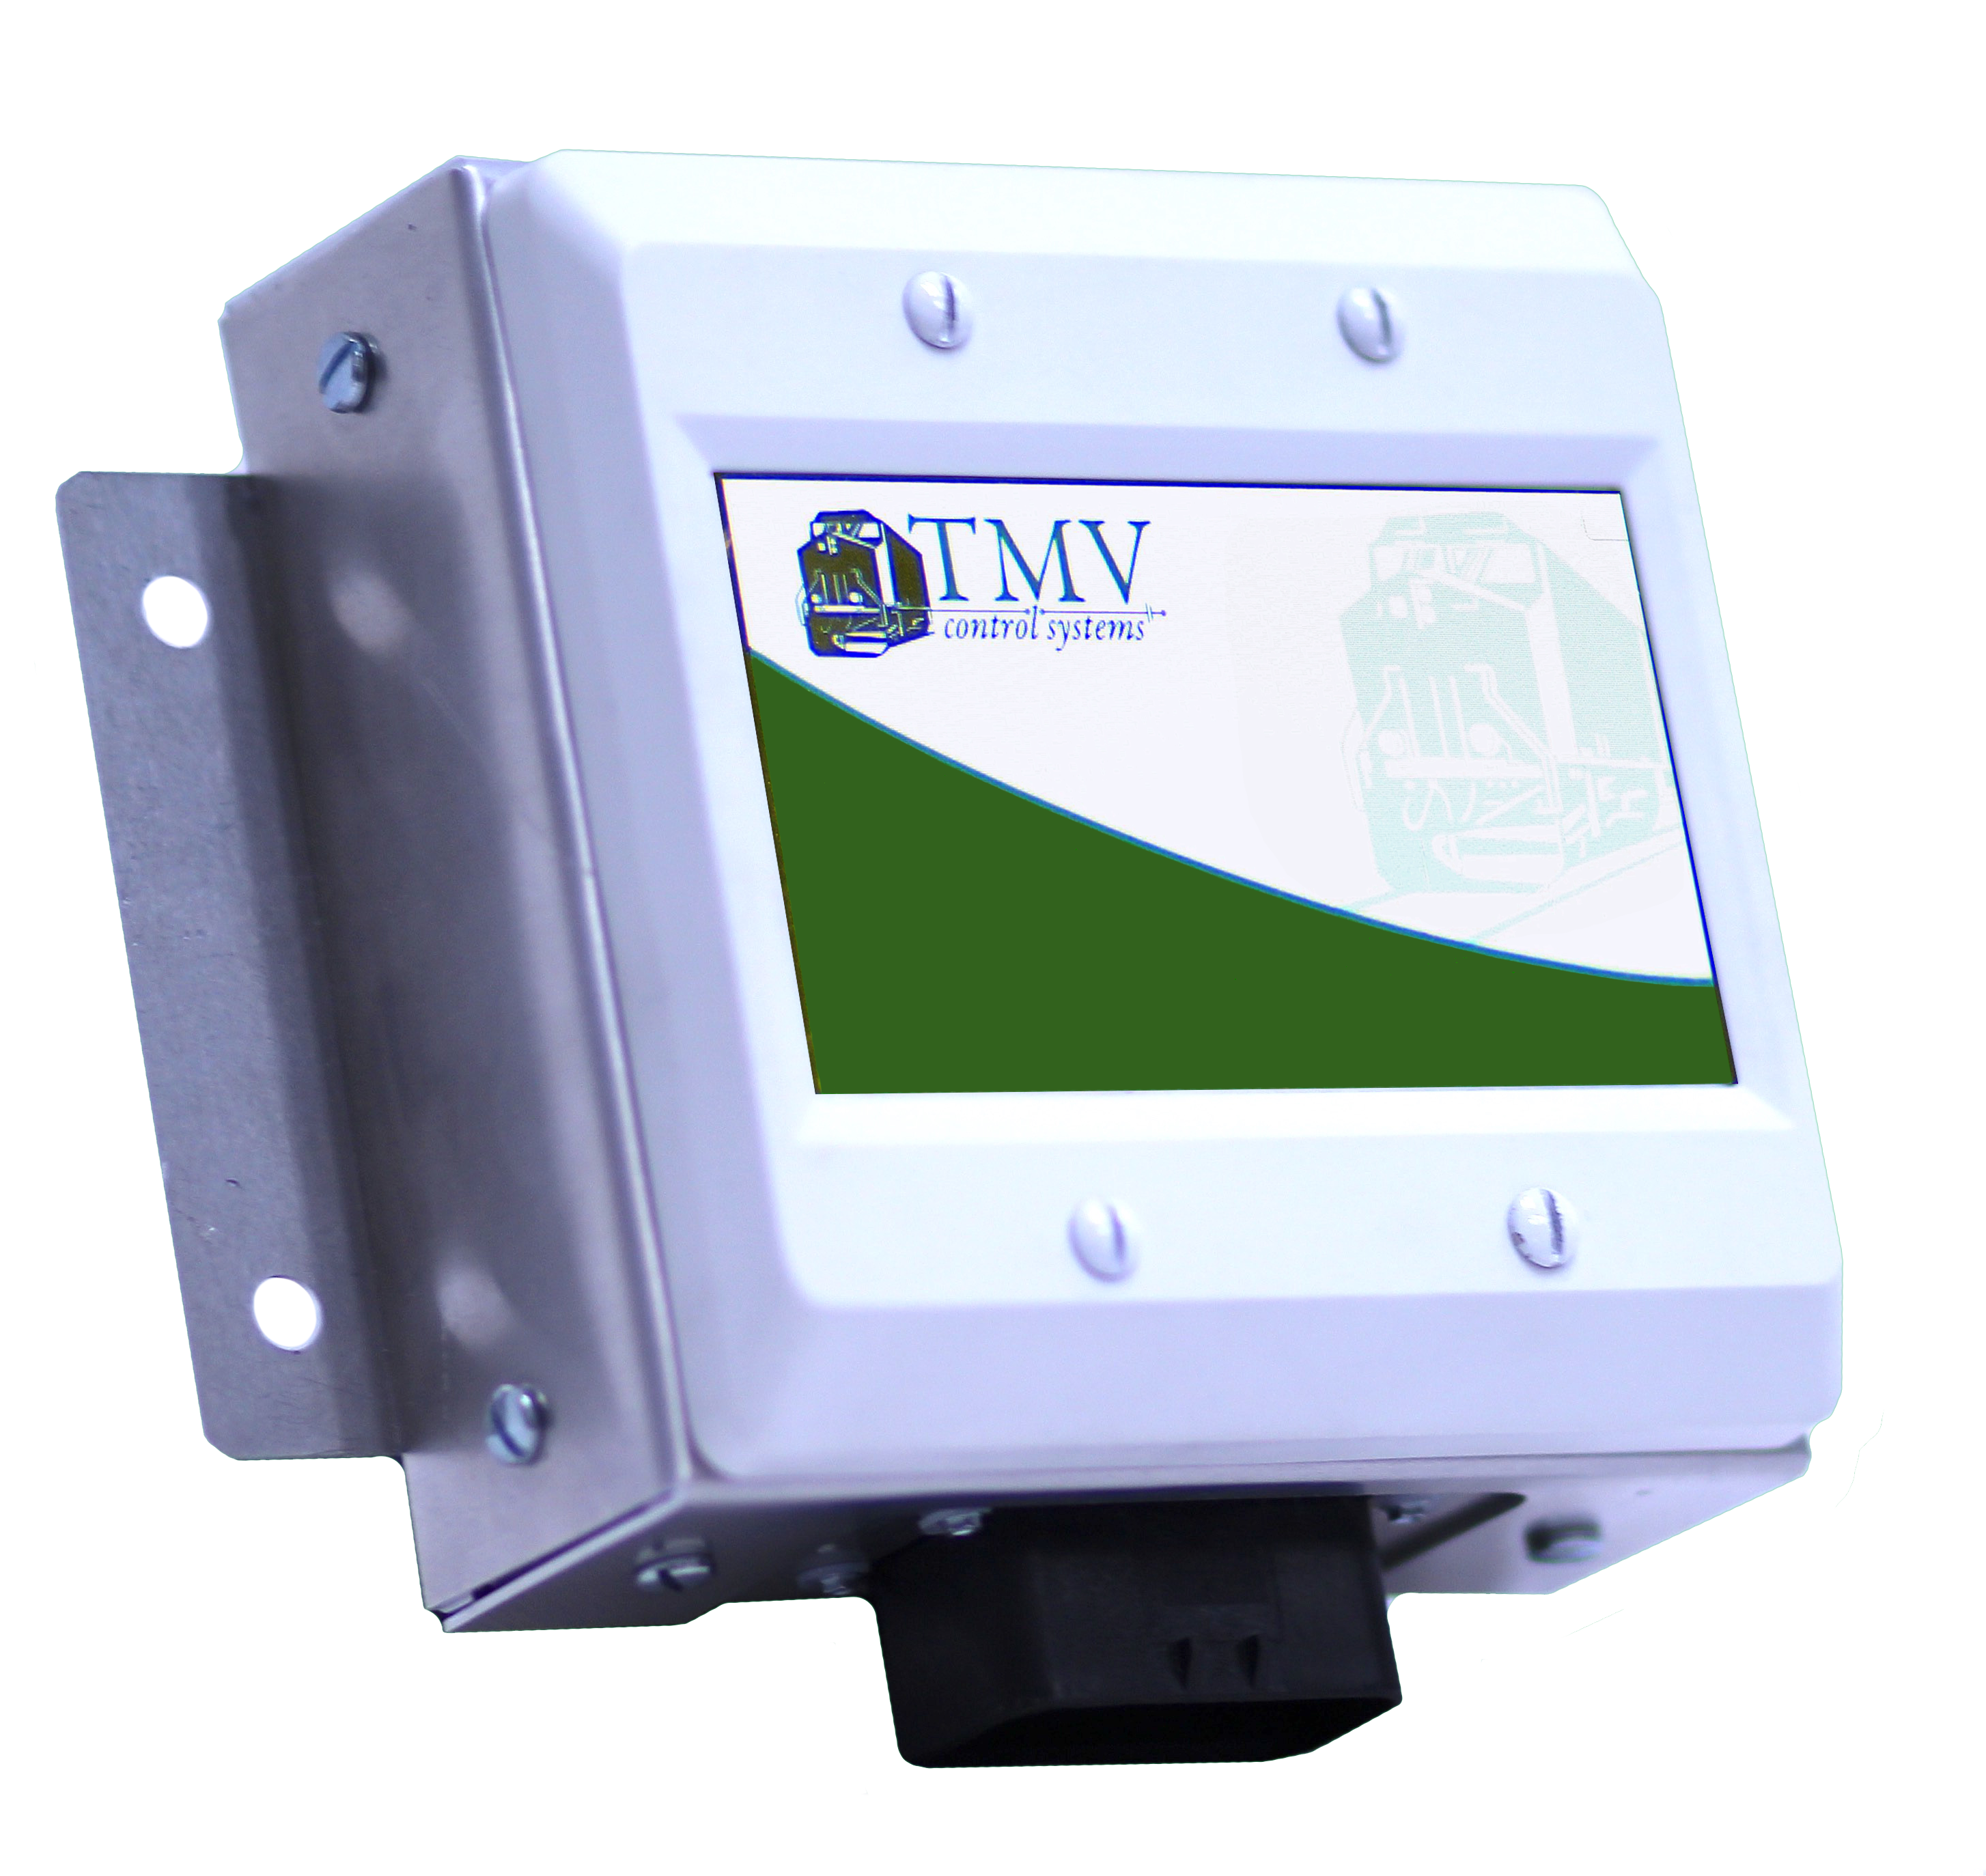 Watt hour meter for locomotive, TMV display, easy discover Megawatts used per hour, for operator record keeping and efficiency, asset-management aid